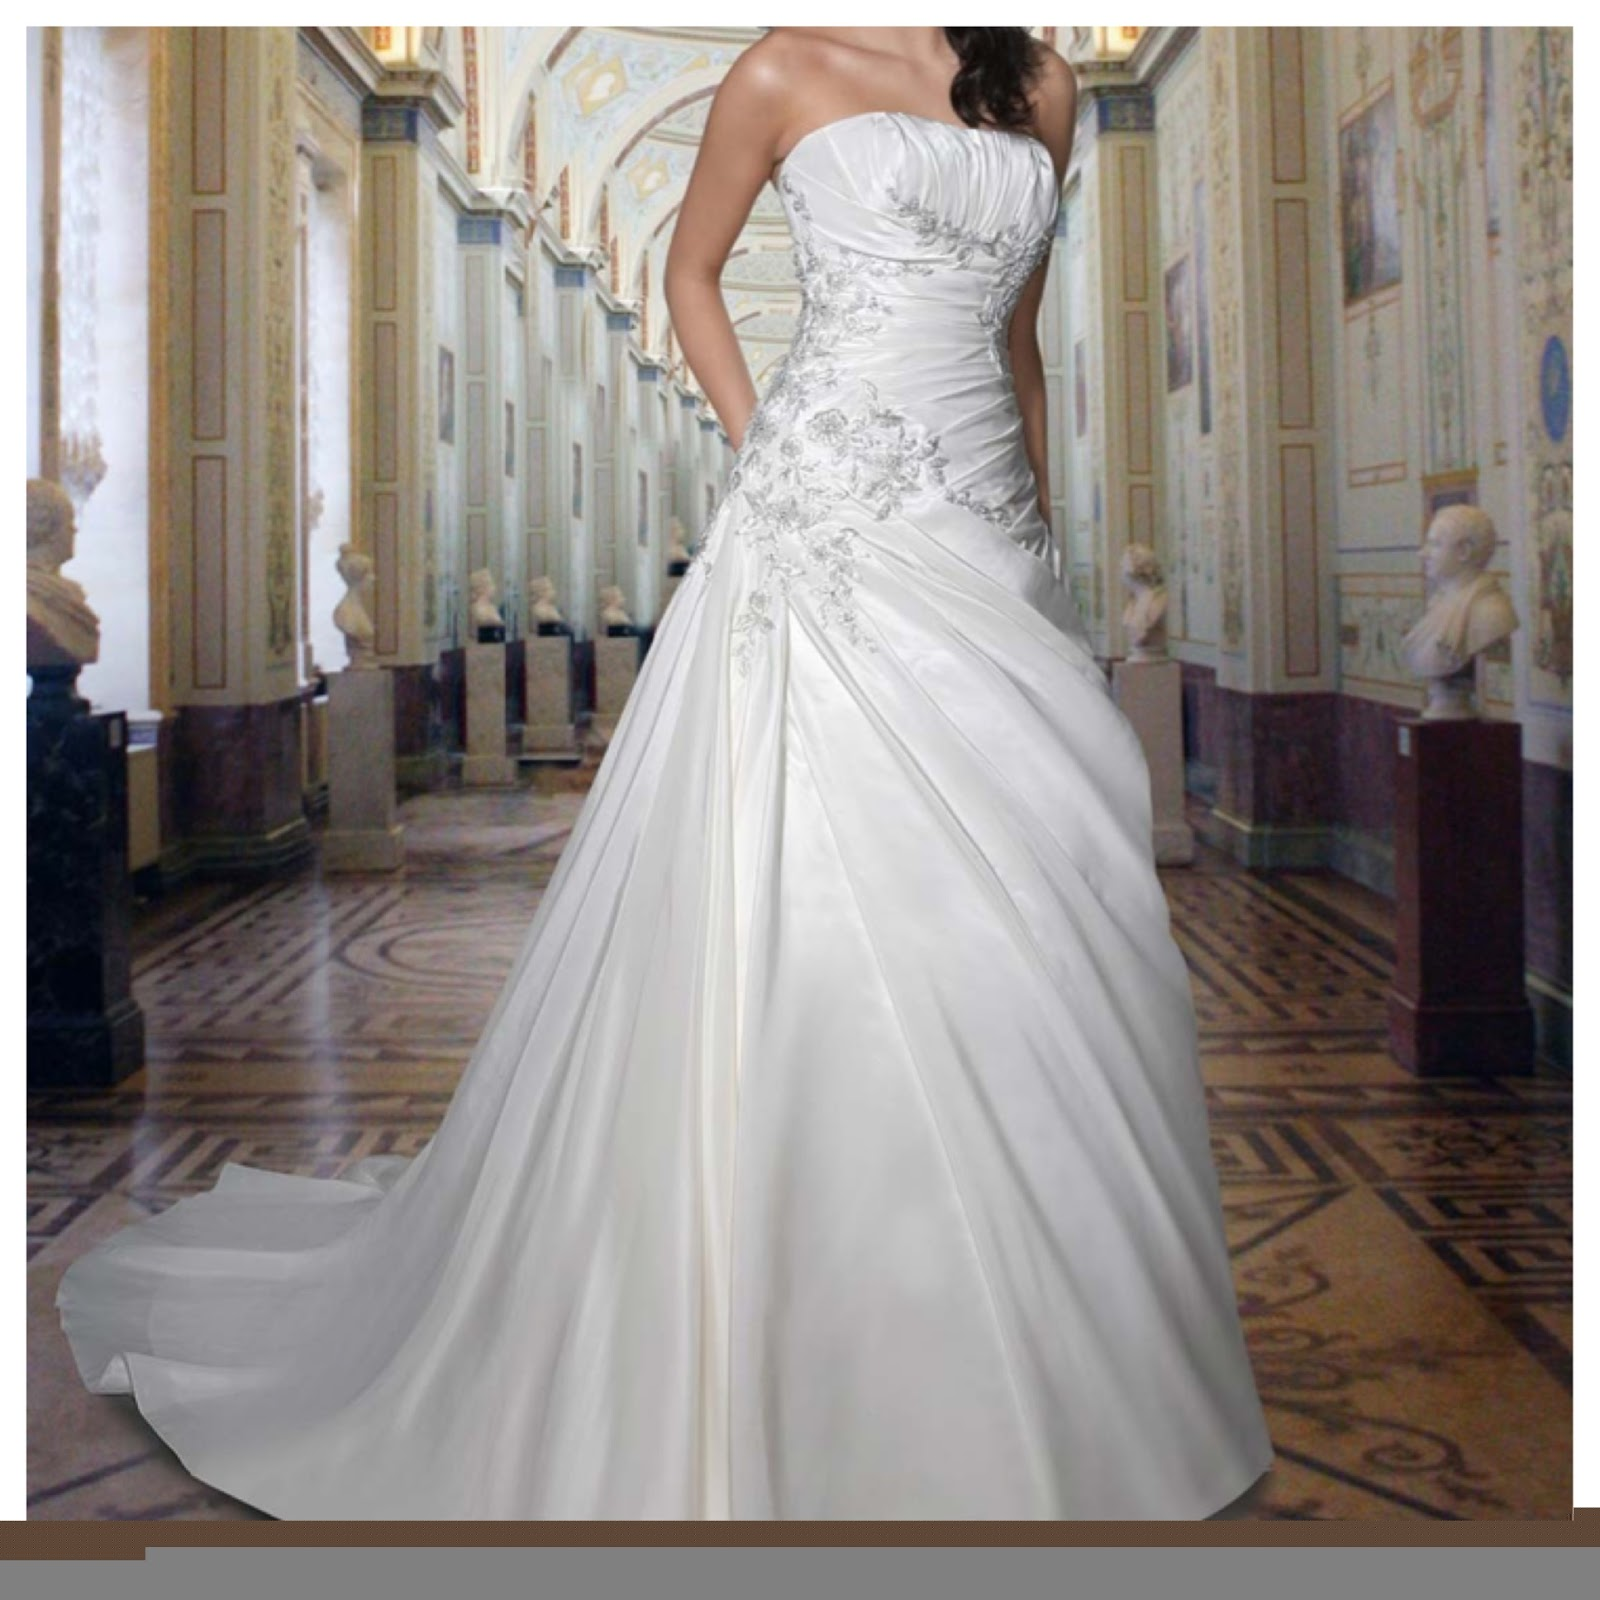 Naijaweddingpages Types Of Wedding Dresses For Different